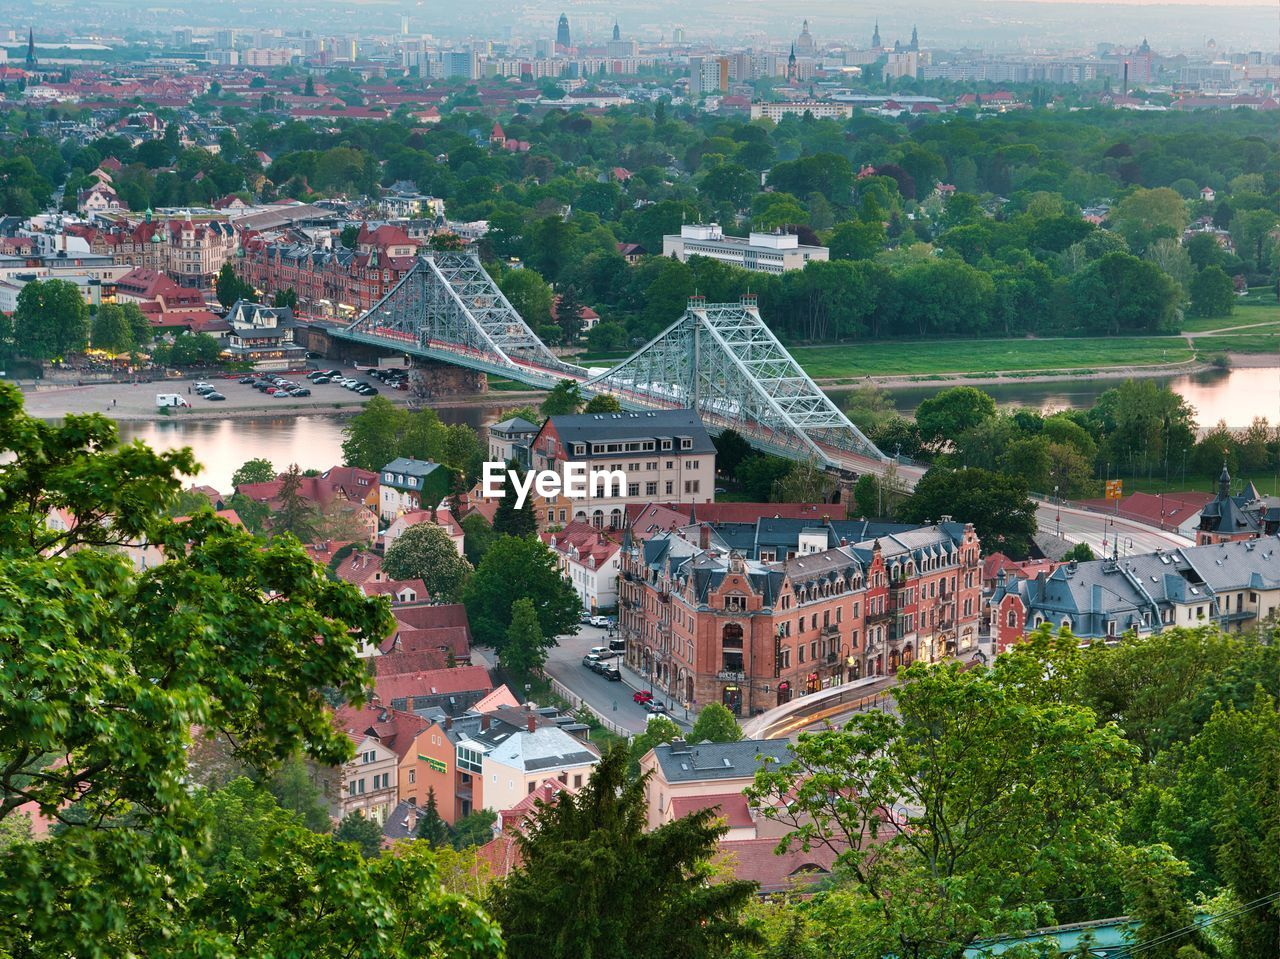 architecture, built structure, building exterior, city, tree, plant, building, cityscape, high angle view, nature, residential district, day, river, crowded, water, town, outdoors, townscape